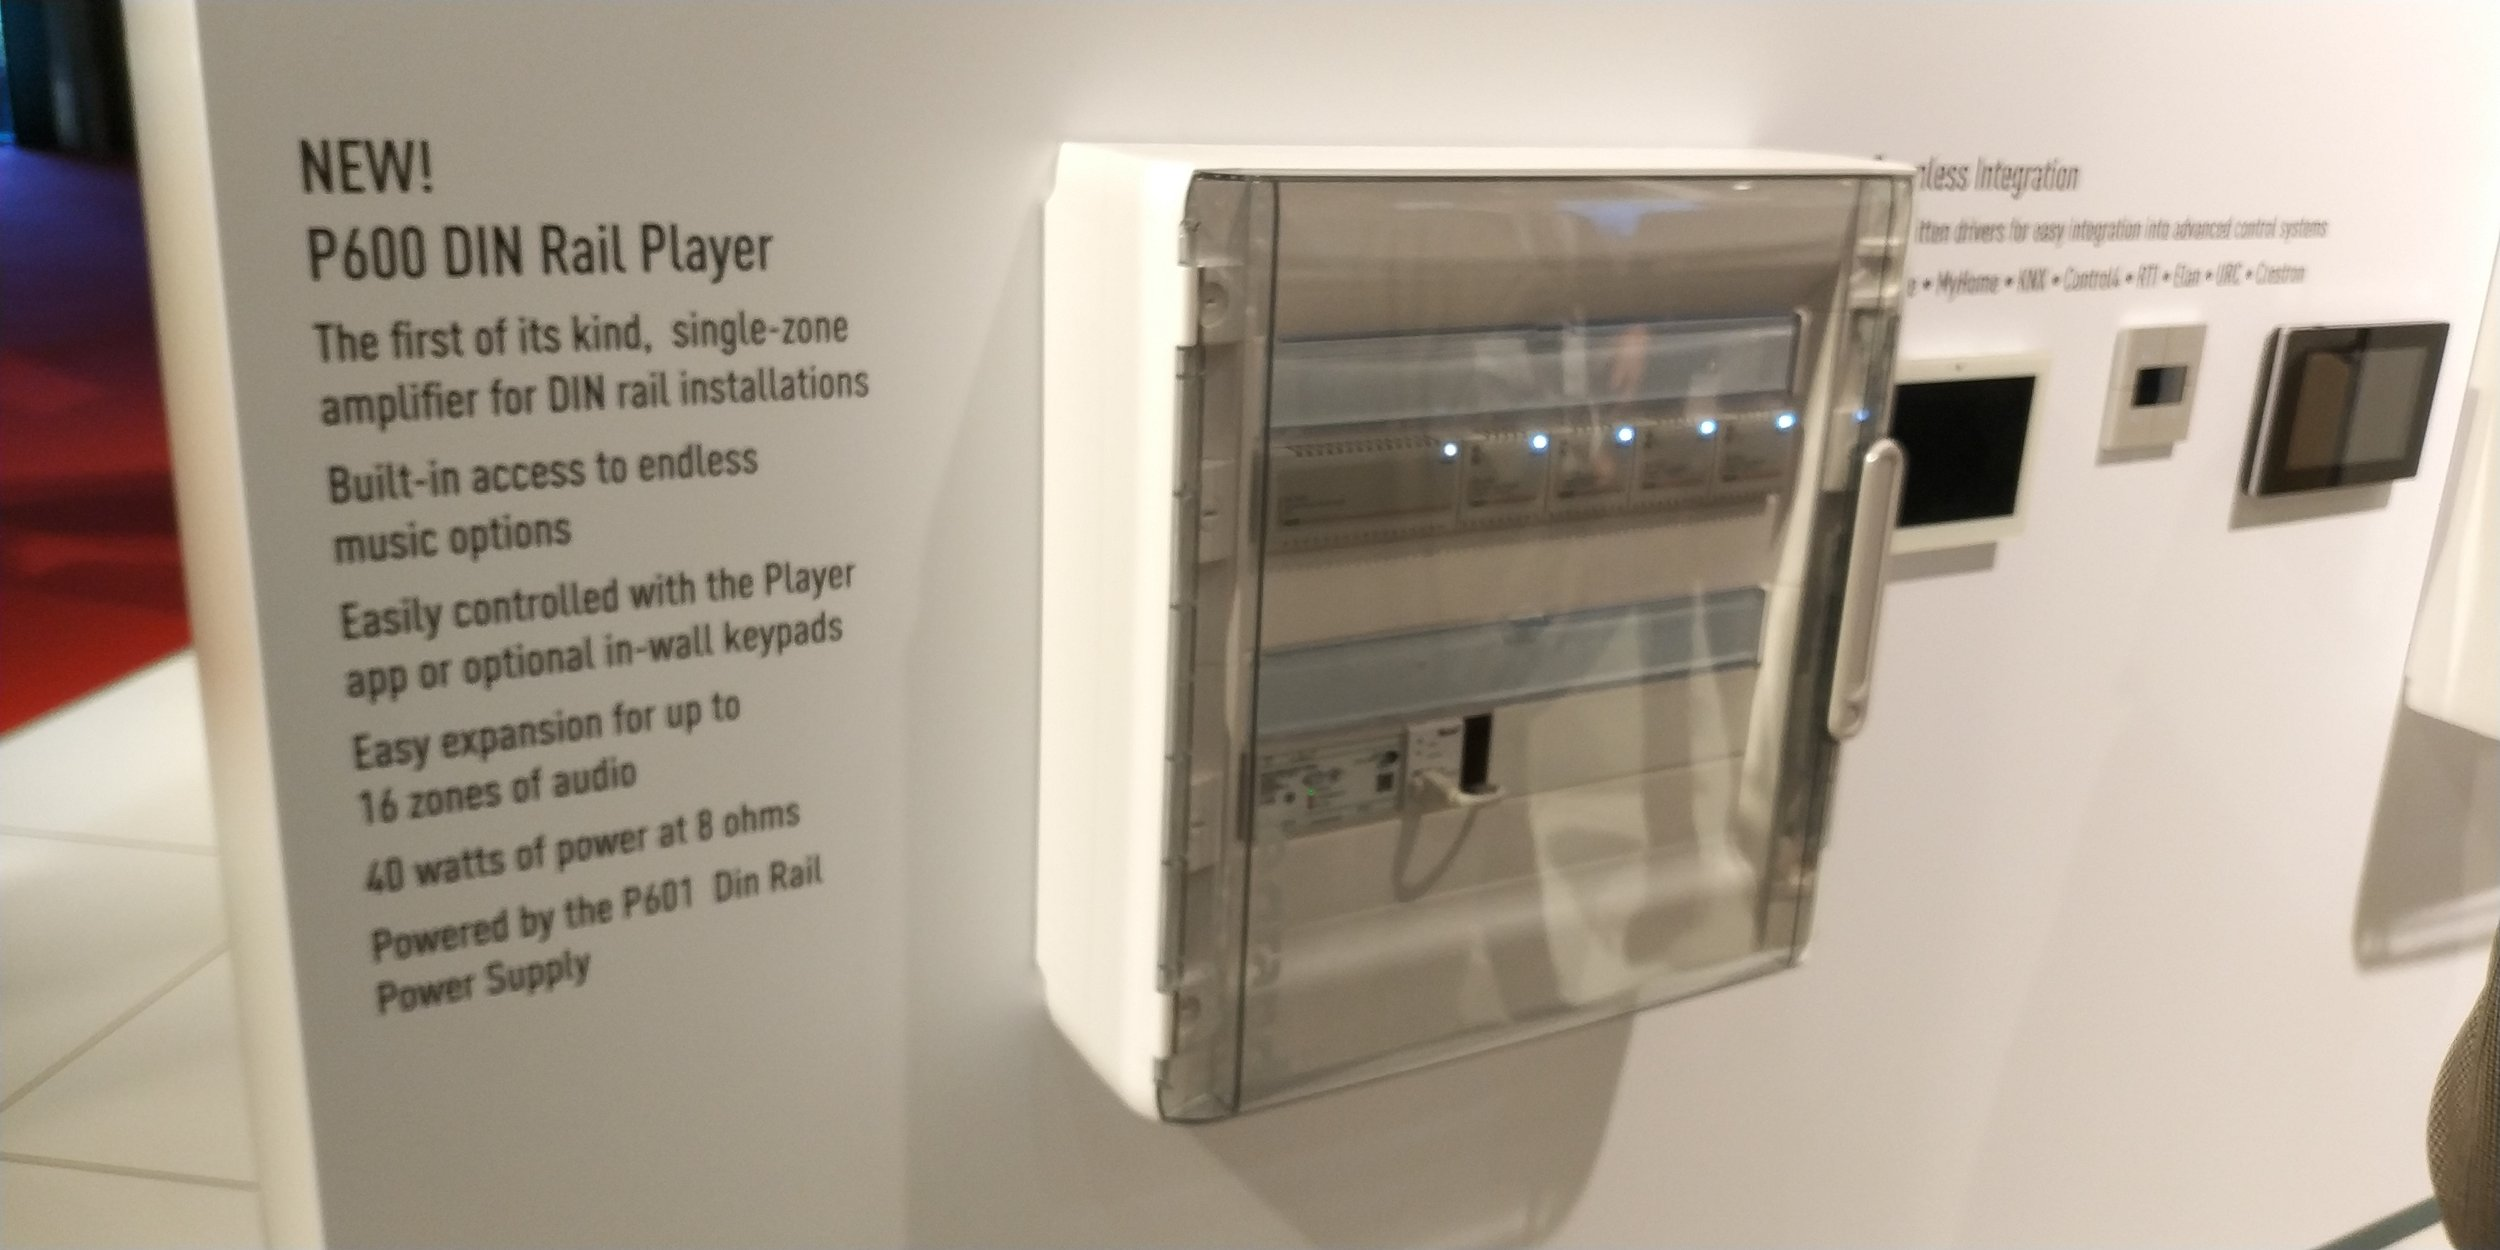 Nuvo's DIN mounted distributed audio amplifier for music all over your home.